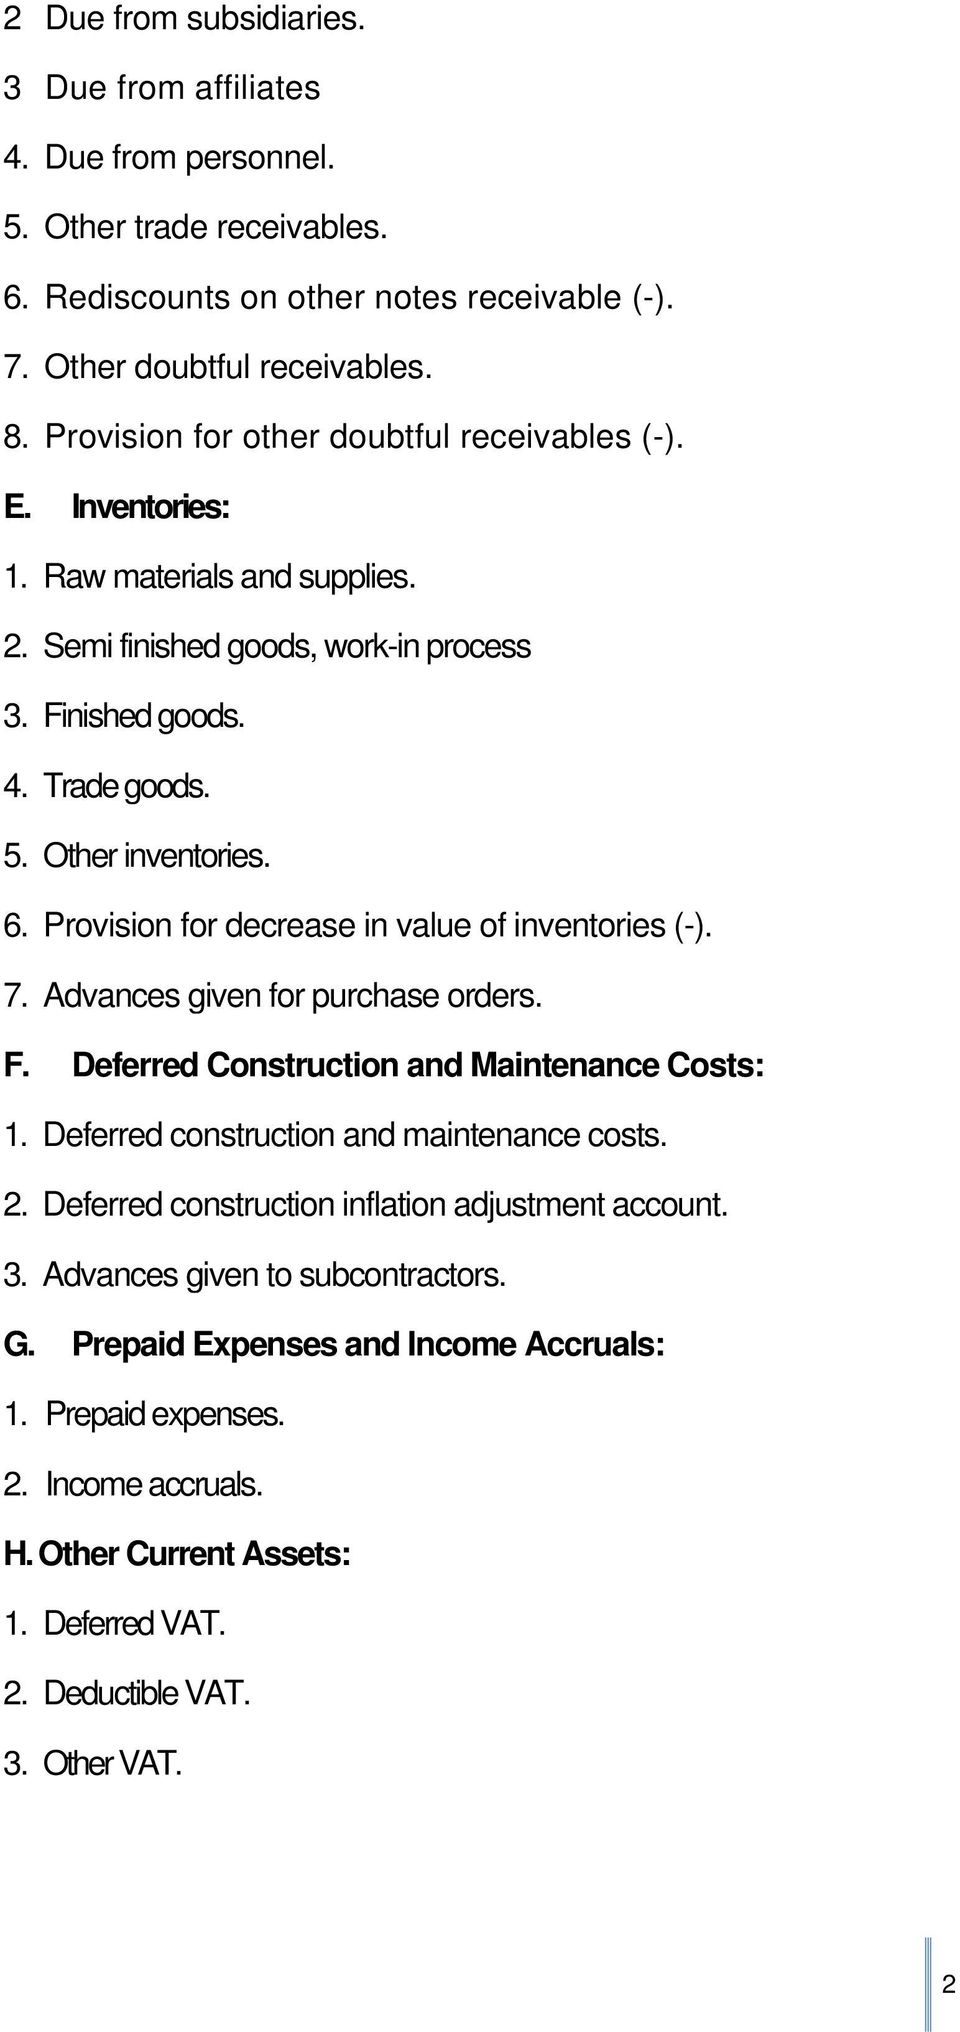 Provision for decrease in value of inventories (-). 7. Advances given for purchase orders. F. Deferred Construction and Maintenance Costs: 1. Deferred construction and maintenance costs. 2.